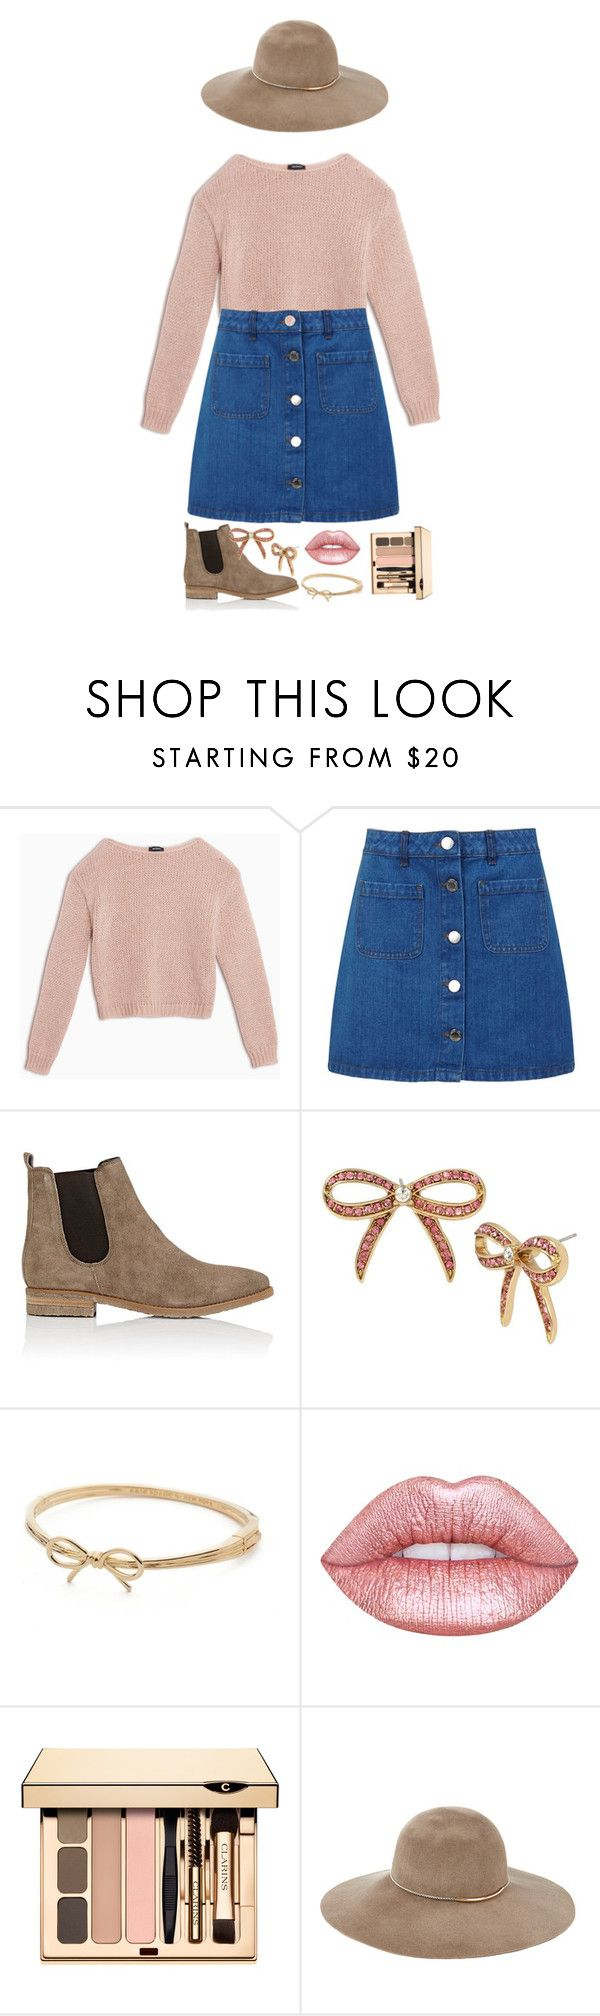 """i could wear outfits like this forever"" by b-pearl ❤ liked on Polyvore featuring Max&Co., Miss Selfridge, Barneys New York, Betsey Johnson, Kate Spade, Lime Crime and Eugenia Kim"